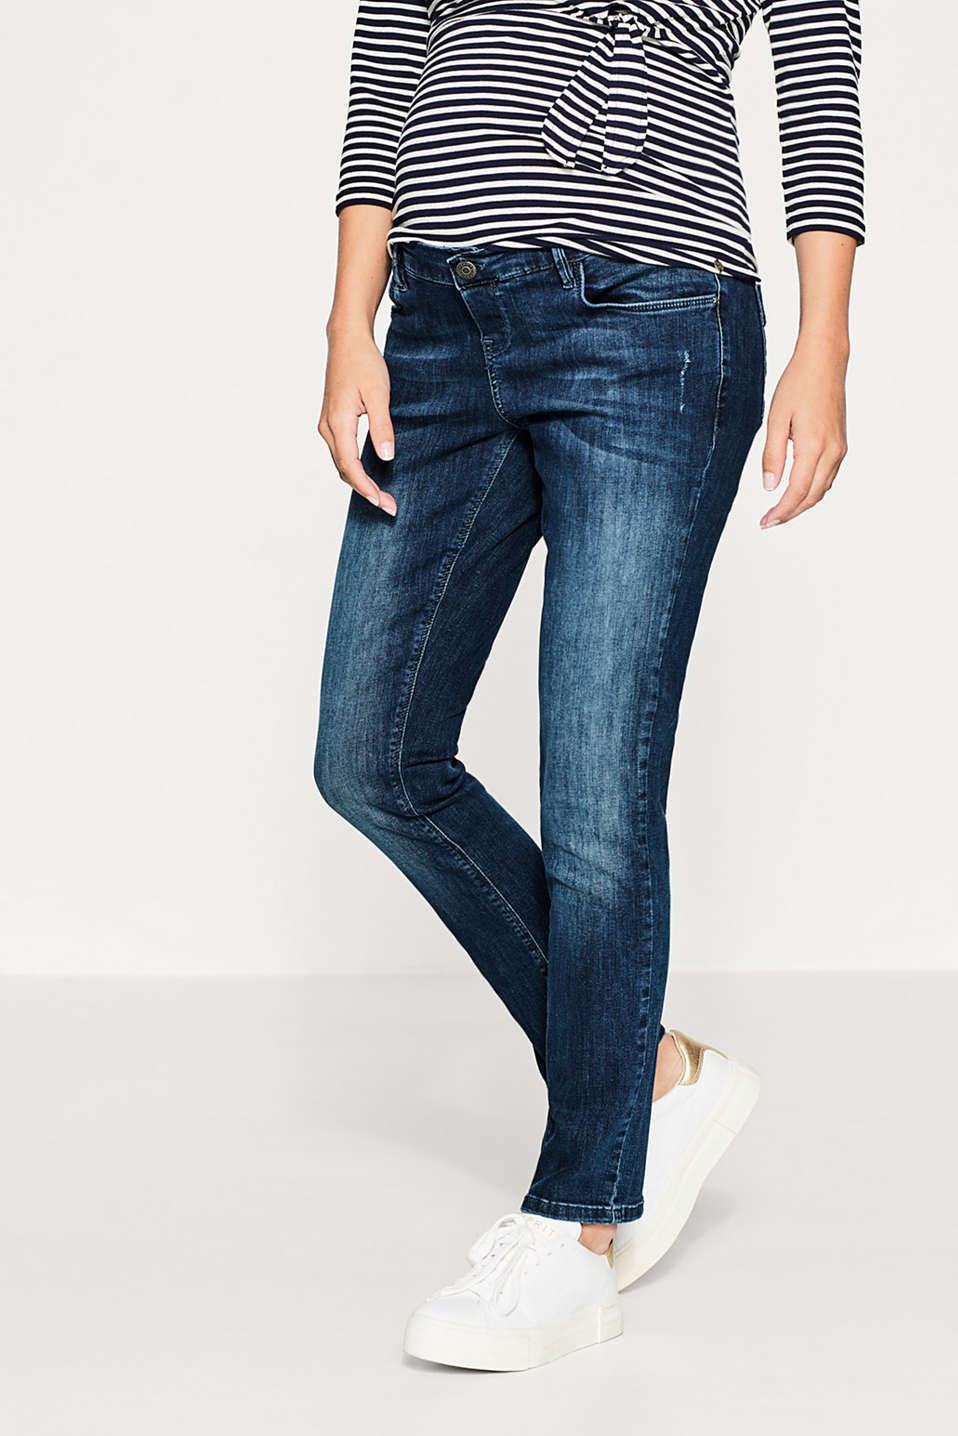 Esprit - Stretch denim jeans, over-bump waistband